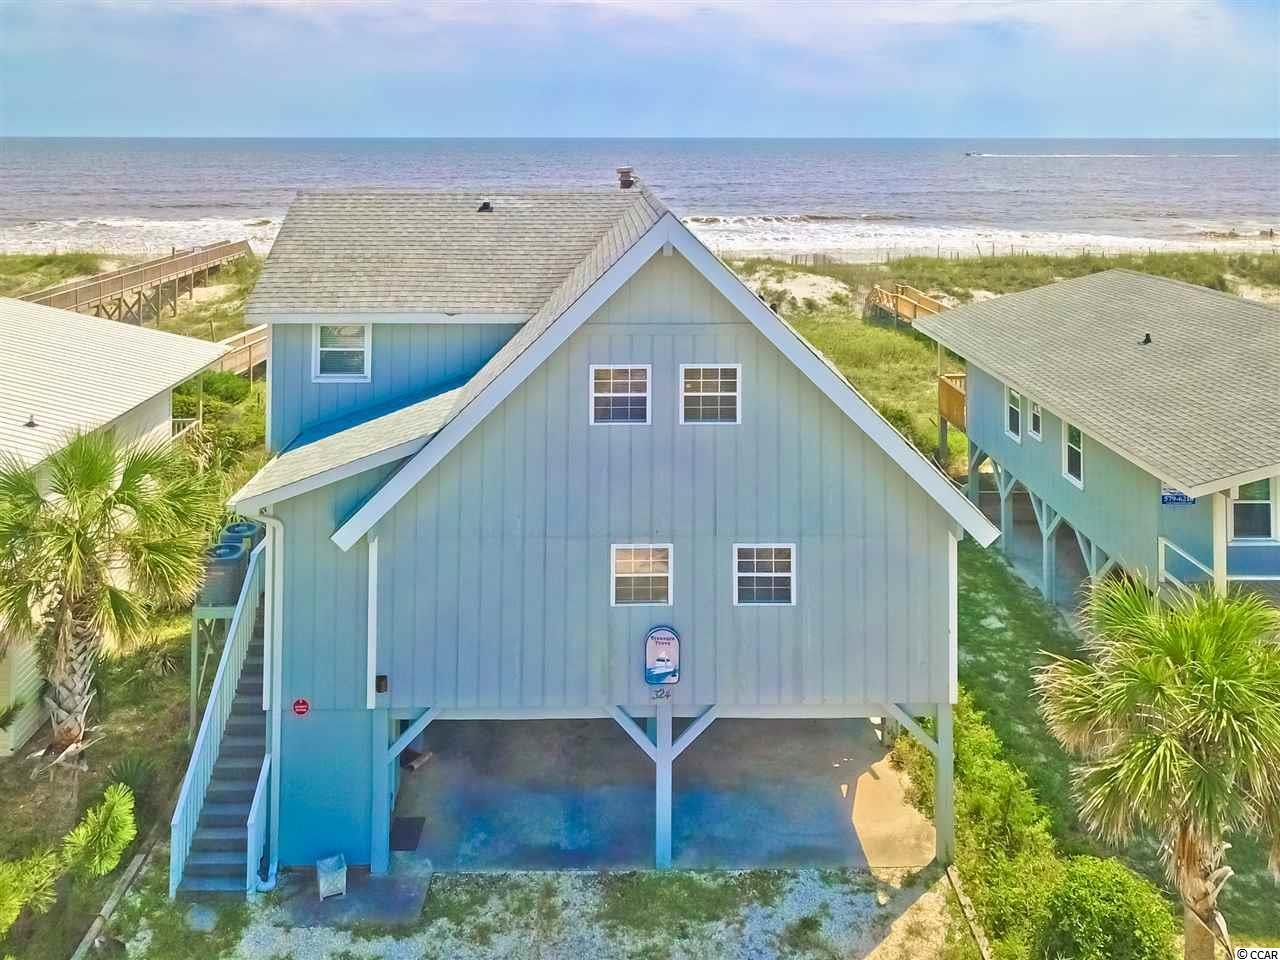 Single Family Home for Sale at 324 E First Street 324 E First Street Ocean Isle Beach, North Carolina 28469 United States